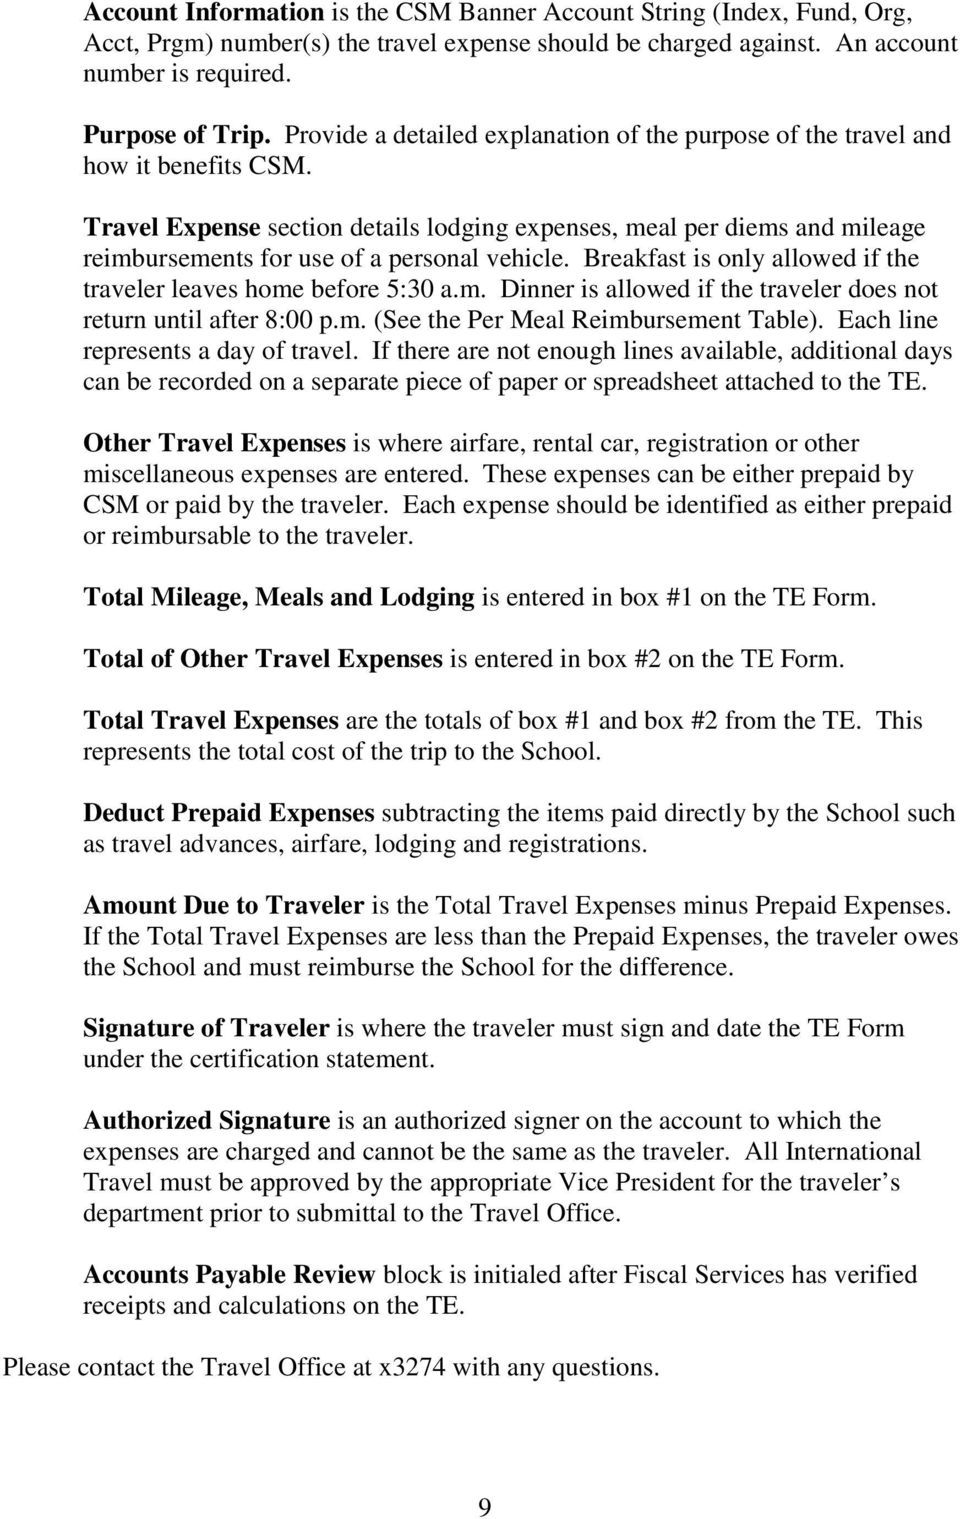 Travel Expense section details lodging expenses, meal per diems and mileage reimbursements for use of a personal vehicle. Breakfast is only allowed if the traveler leaves home before 5:30 a.m. Dinner is allowed if the traveler does not return until after 8:00 p.